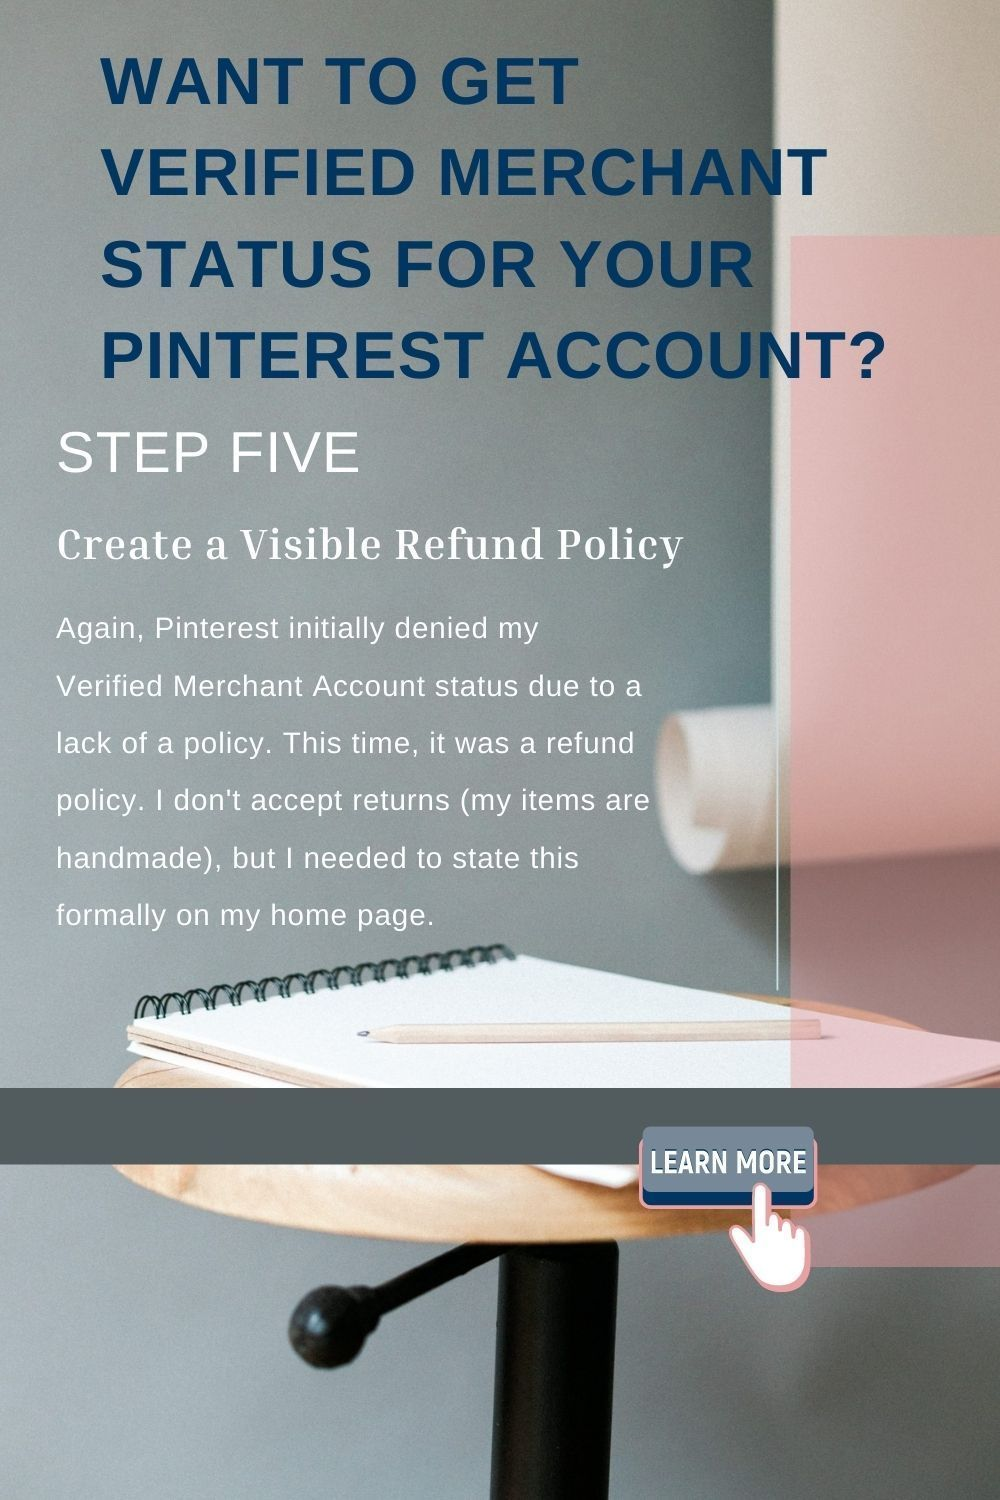 Verified Merchant Program How To Use Pinterest Marketing In 2021 How To Get Verify Merchants How to verify that addition is